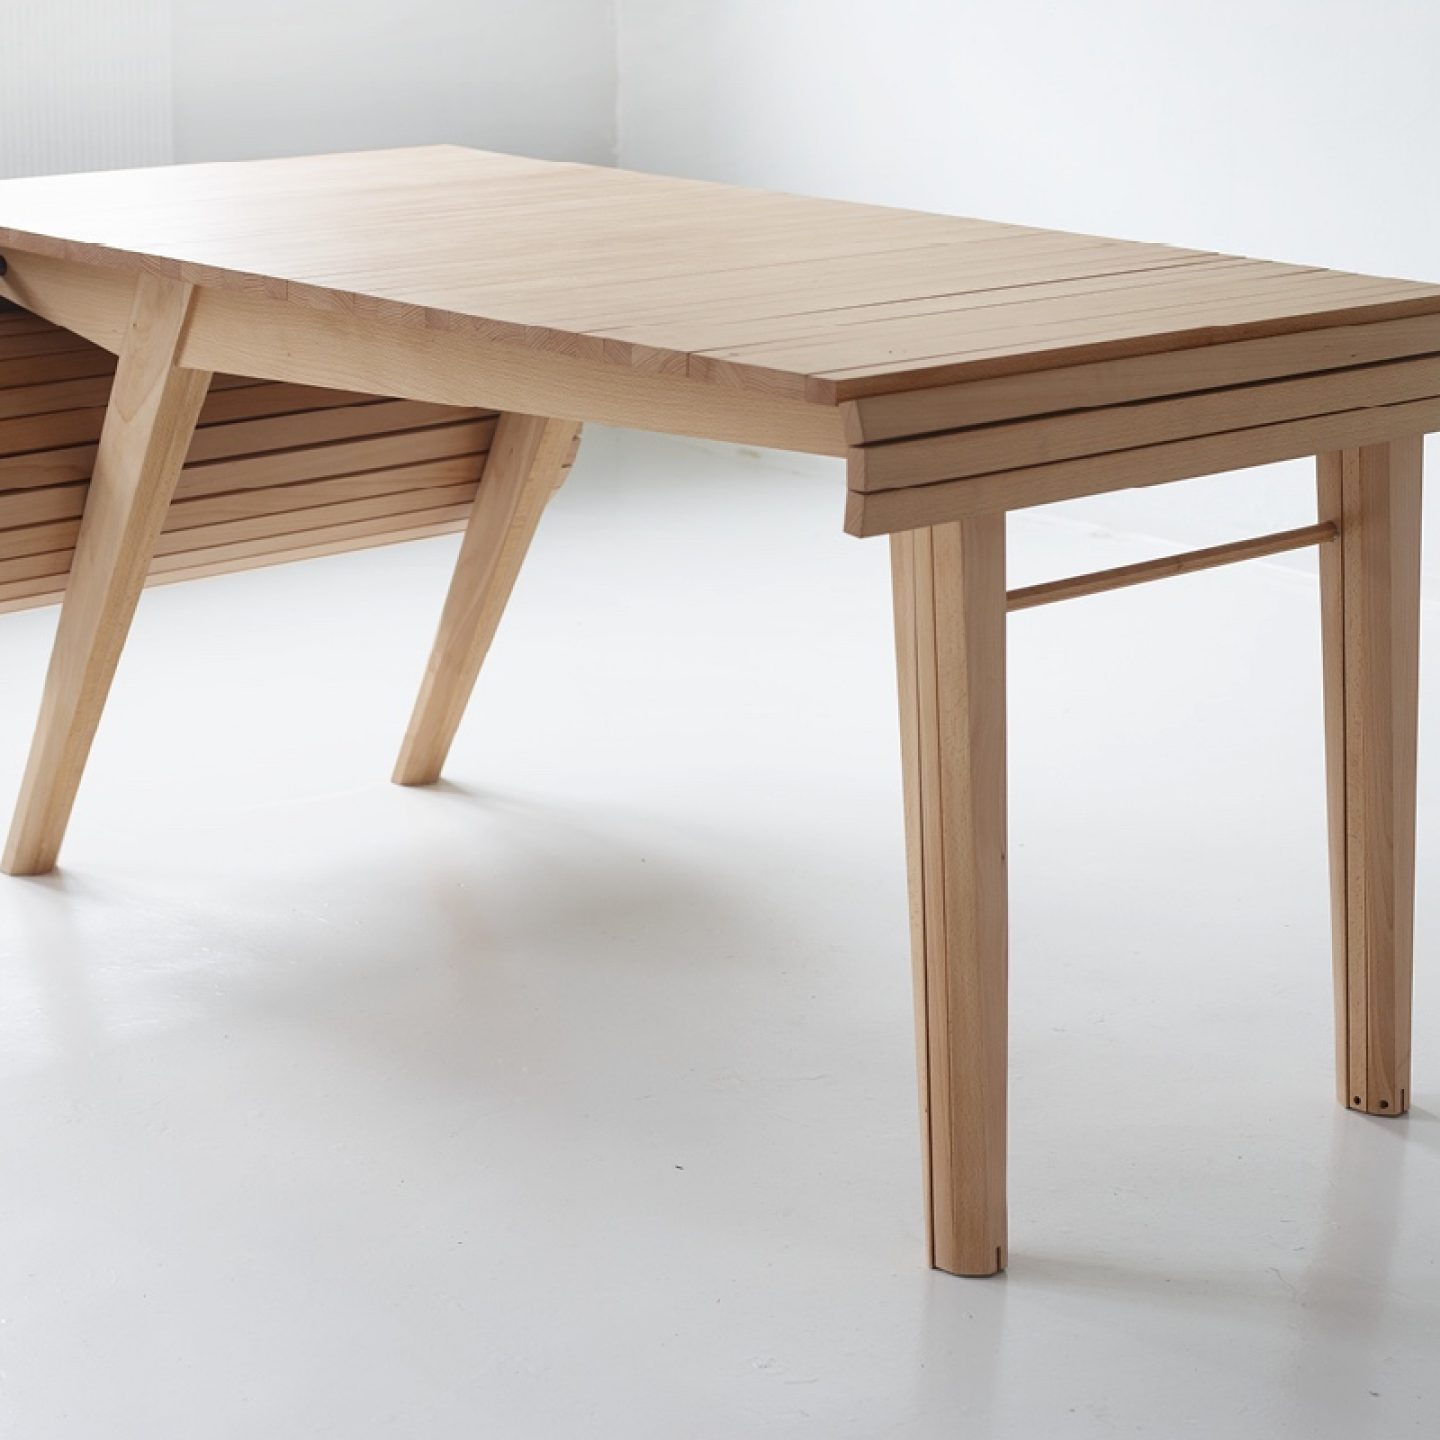 Design_Roll-out_Table_Marcus_Voraa_IGNANT_6